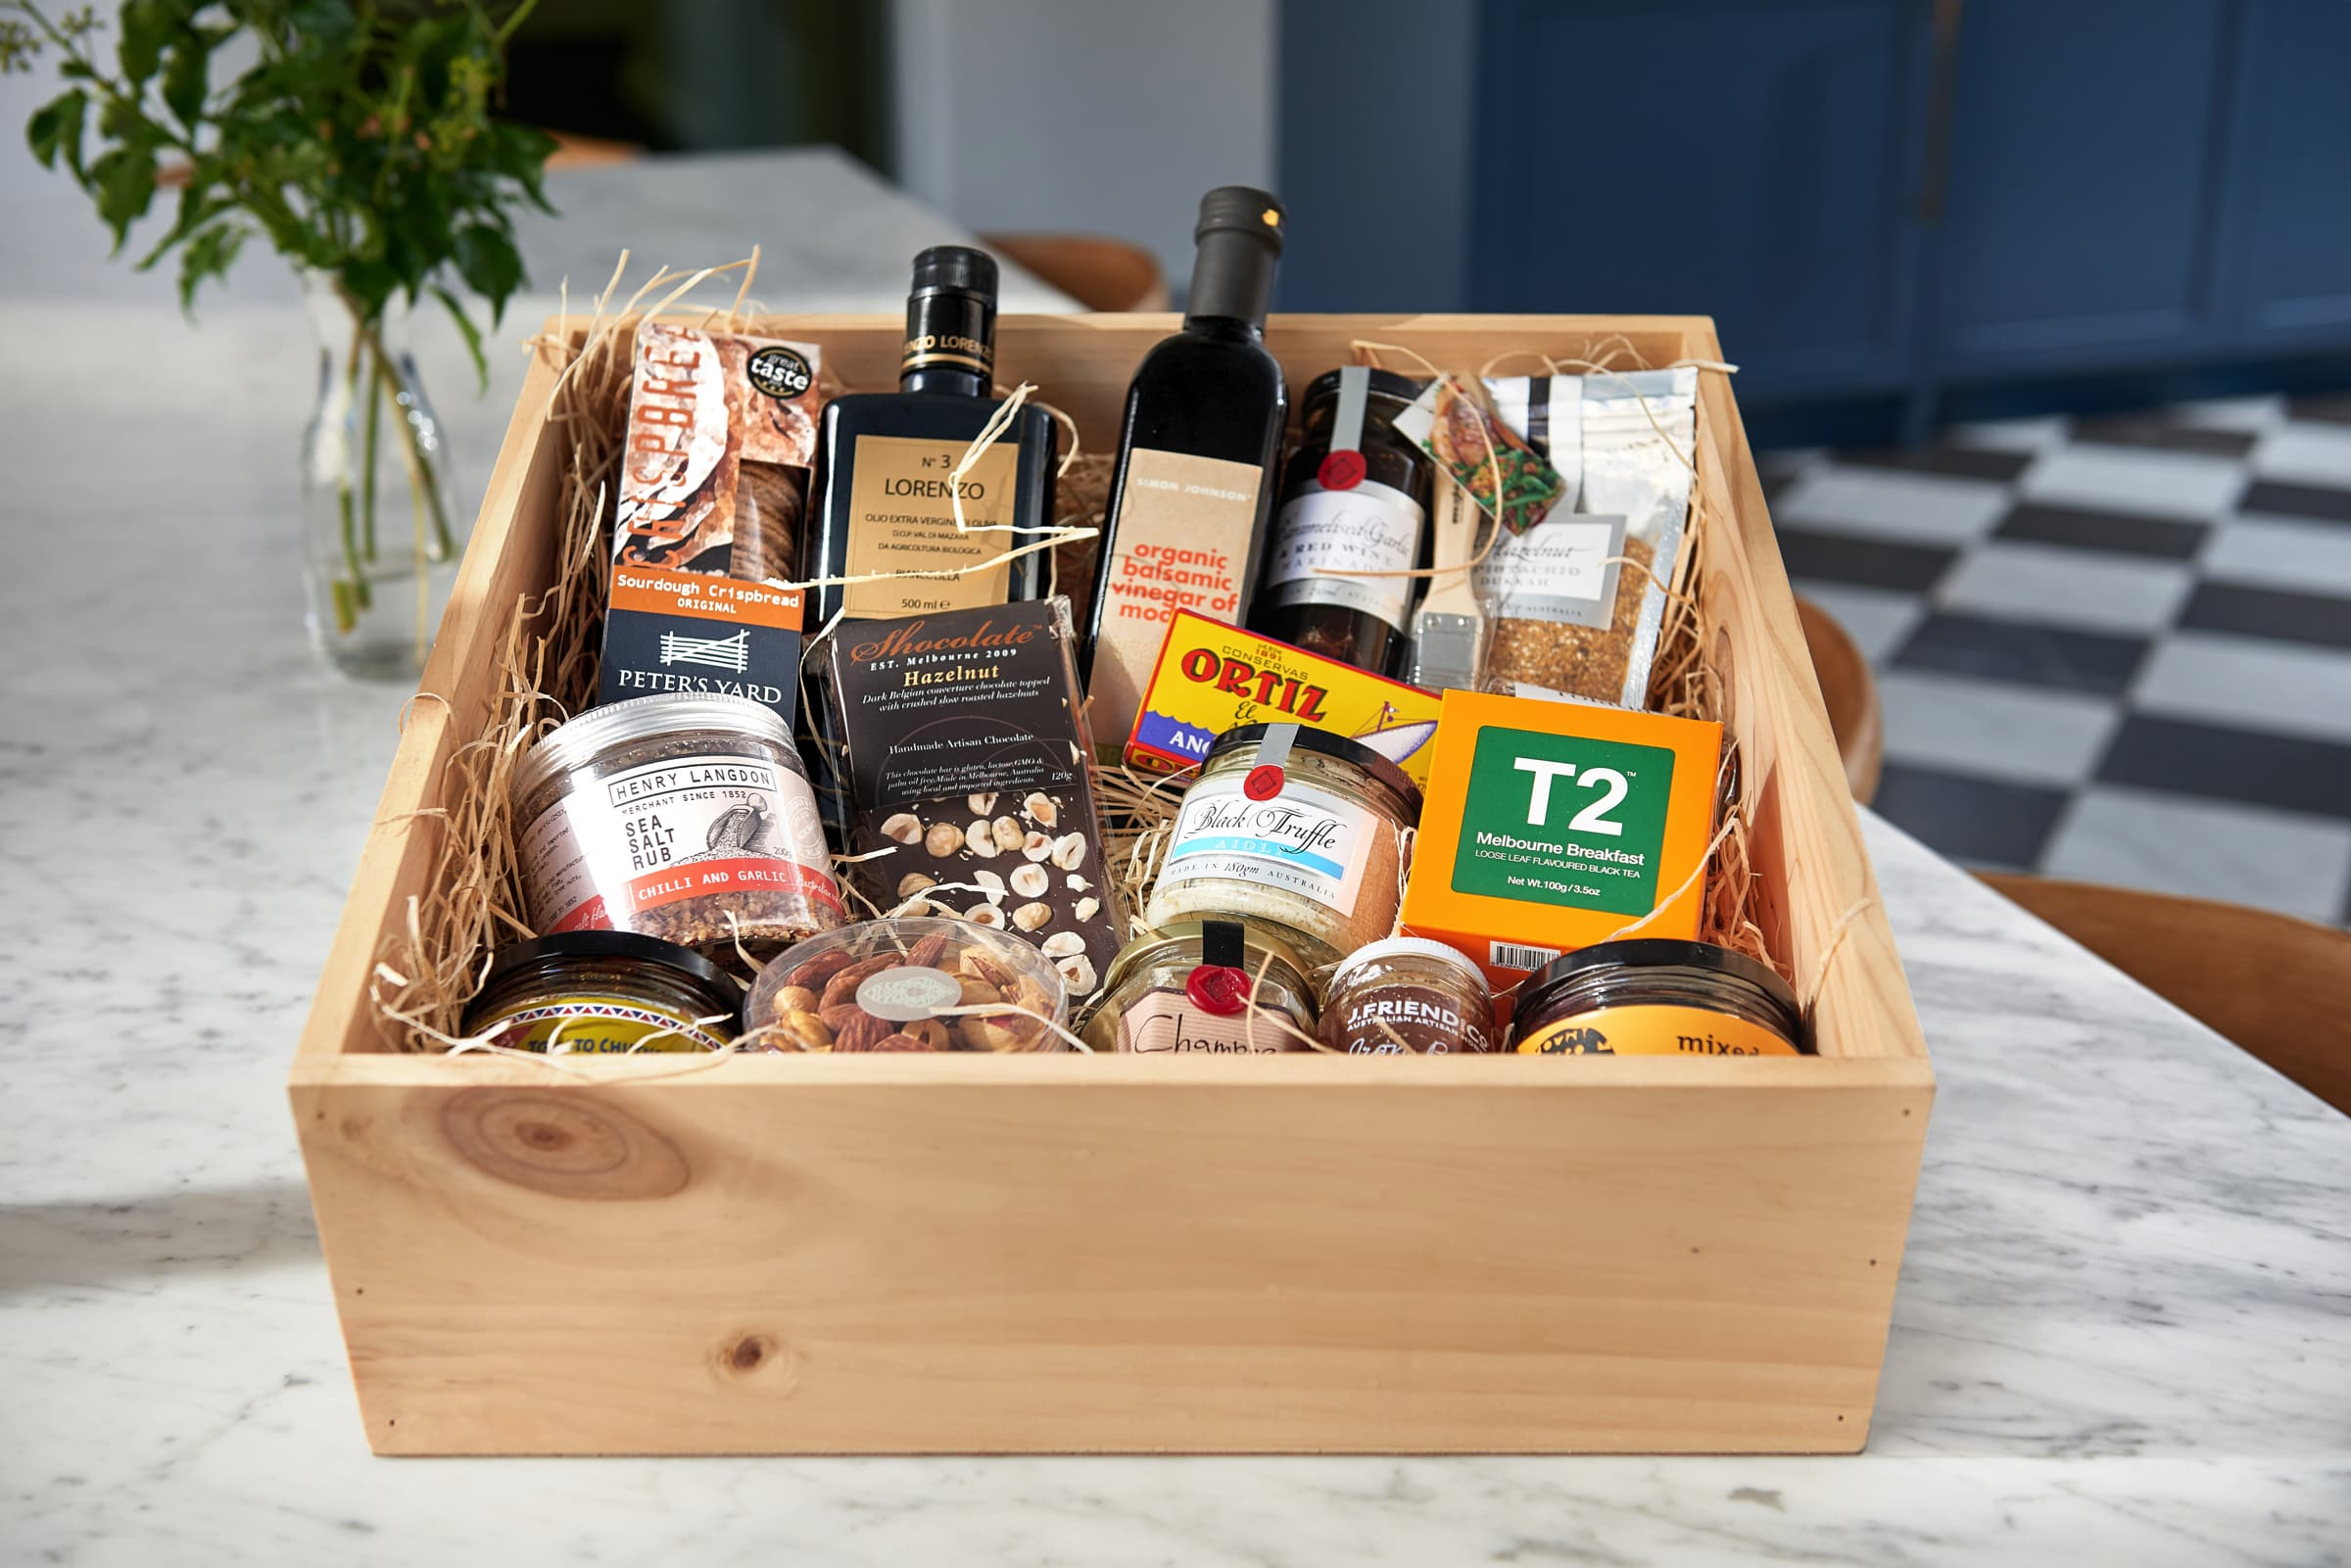 Hampers & Gifts - We package together the perfect gift hamper for your event, occasion or special celebration.